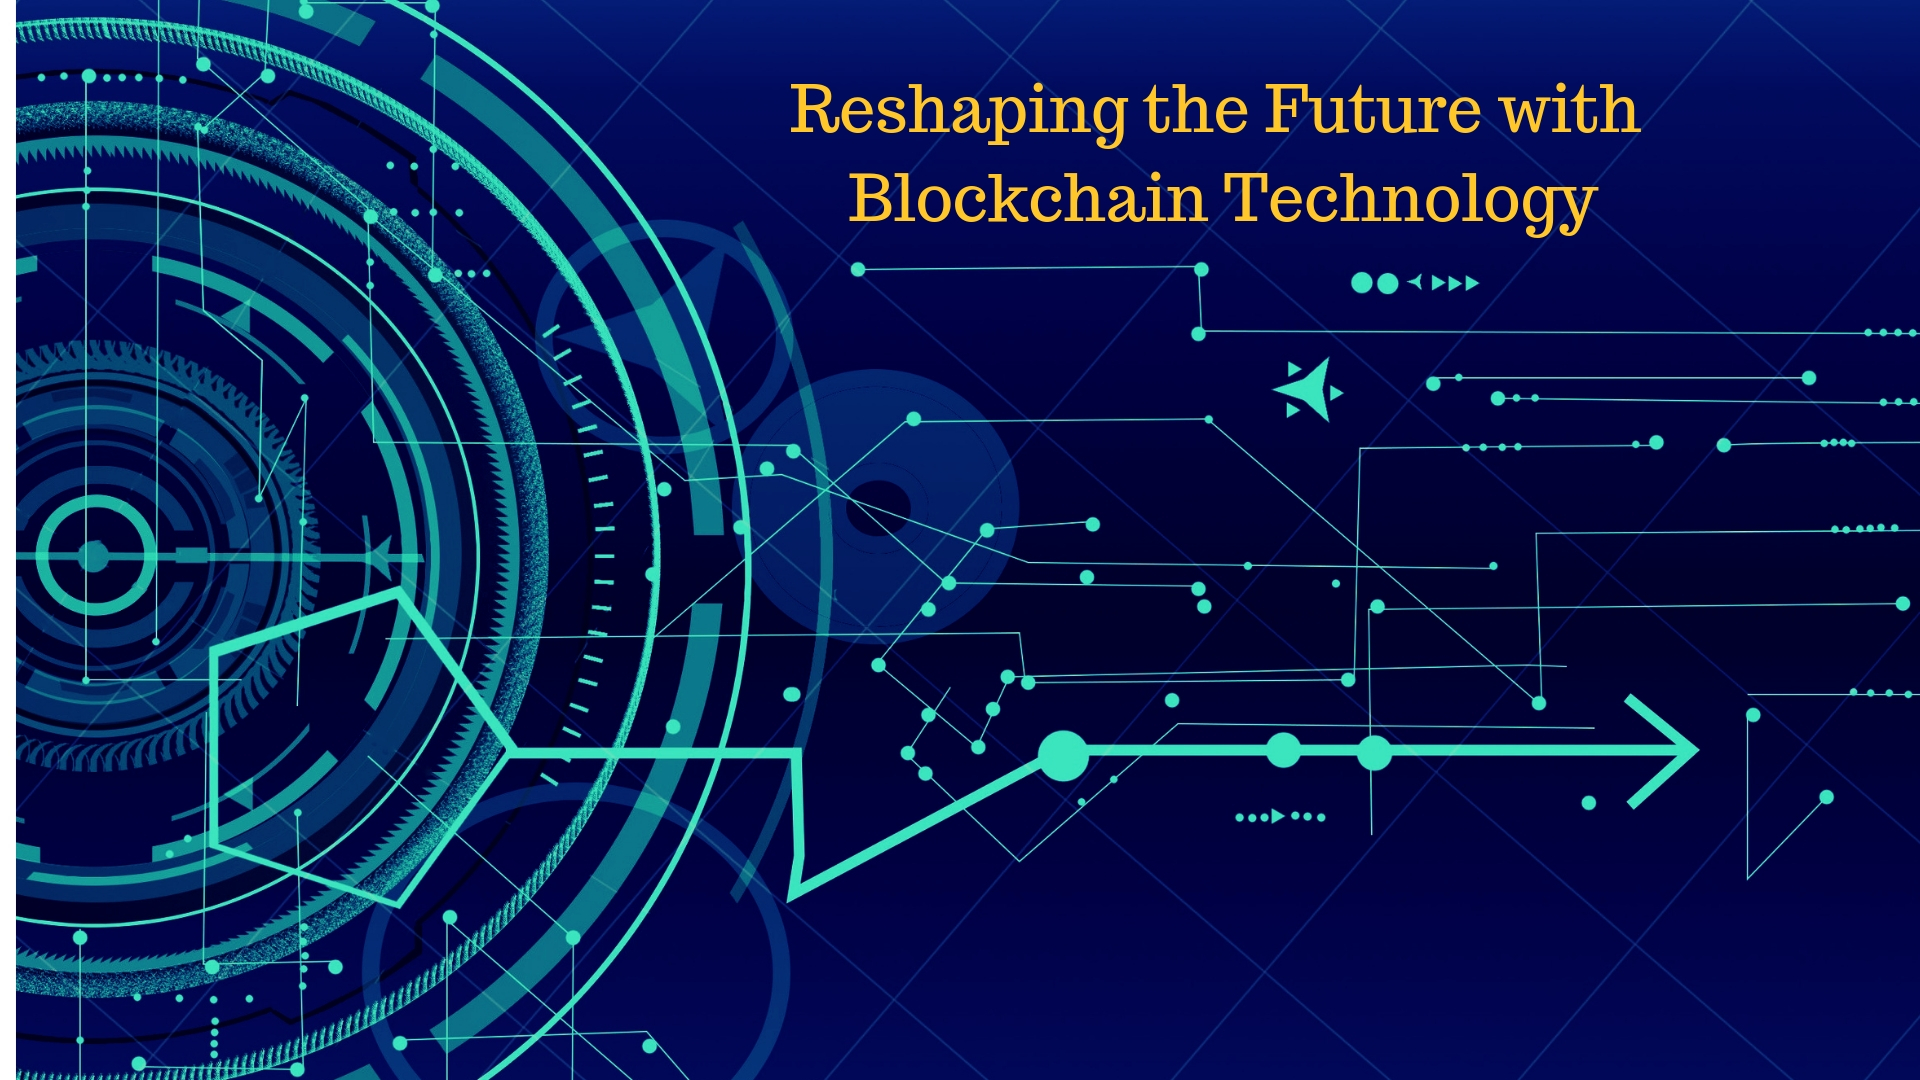 Reshaping the Future with Blockchain Technology